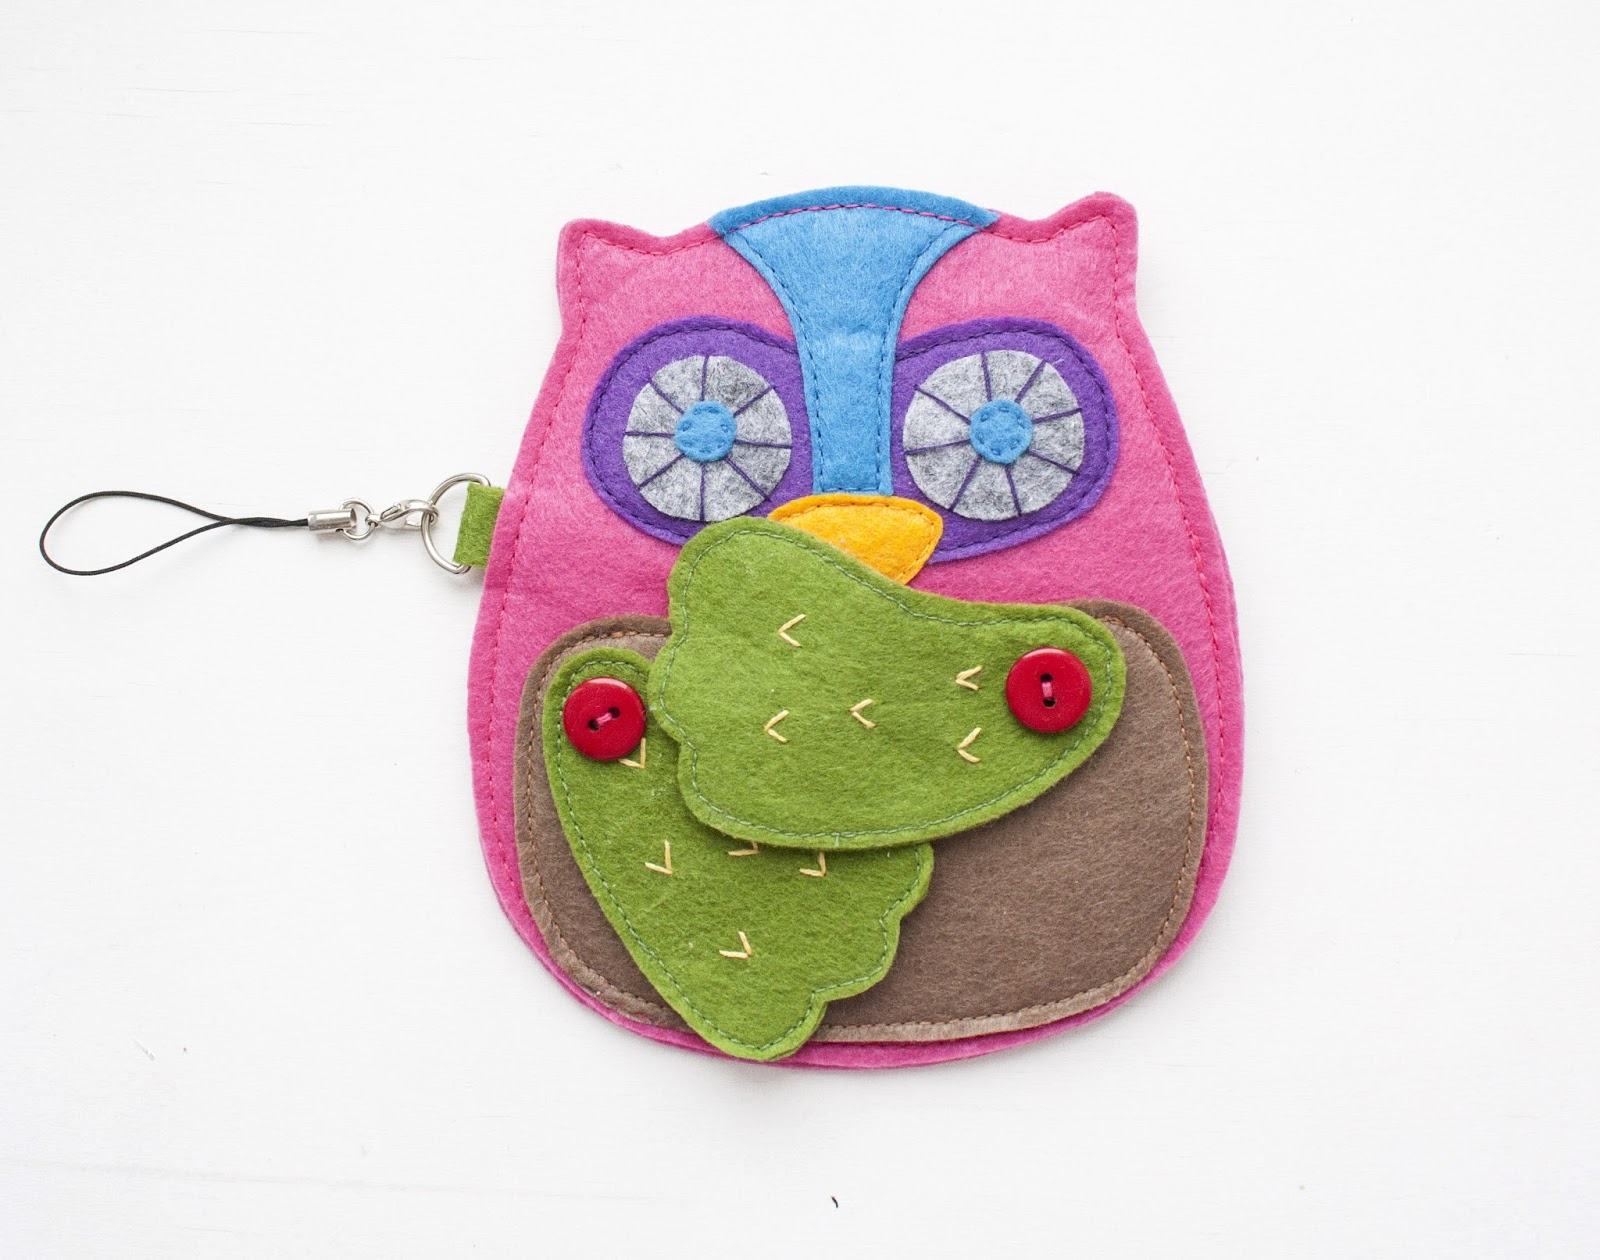 Cute Handmade Owl Zipper Wallet Coin Purse Pattern. DIY Step-by-Step Tutorial Instruction.